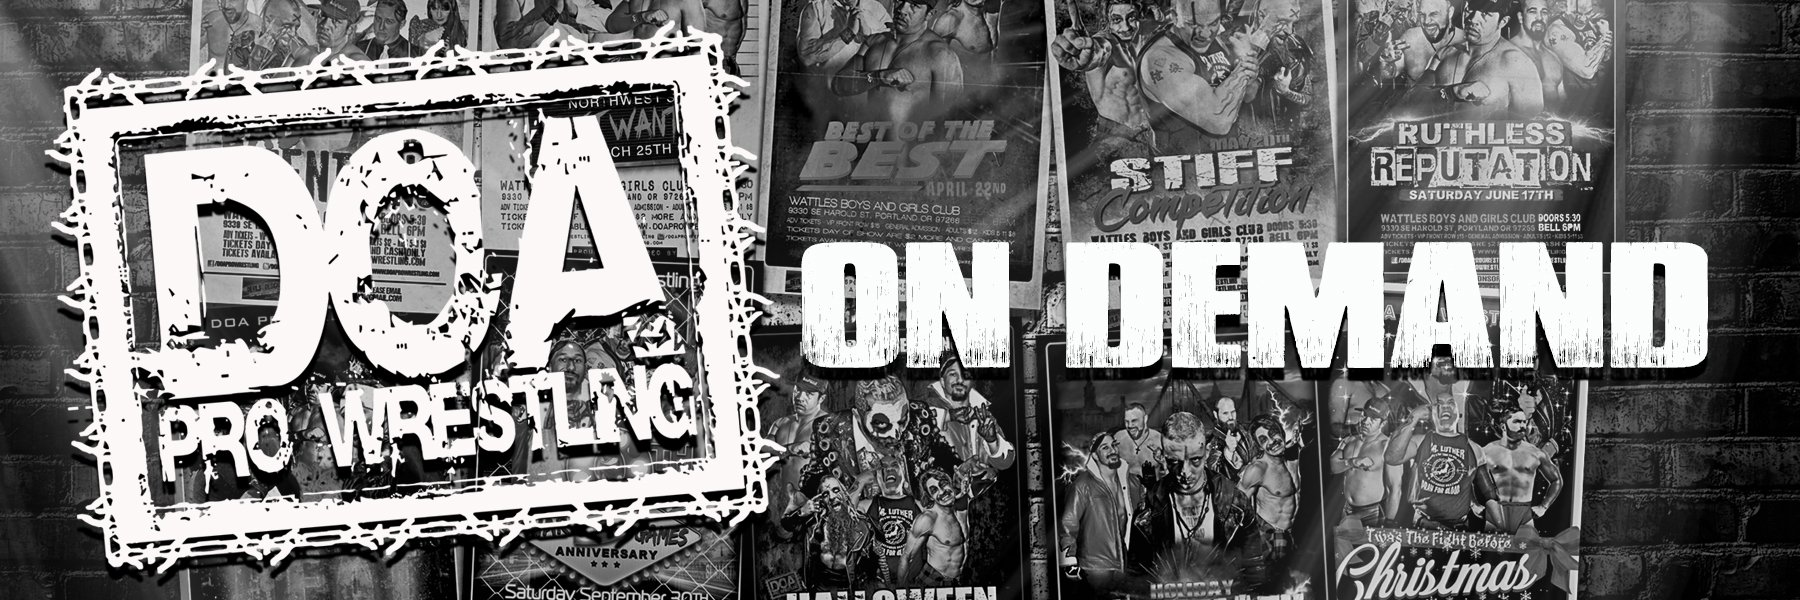 doaprowrestling   The premiere independent wrestling promotion in the Northwest since 2008   Watch Online Videos for Just $2.99